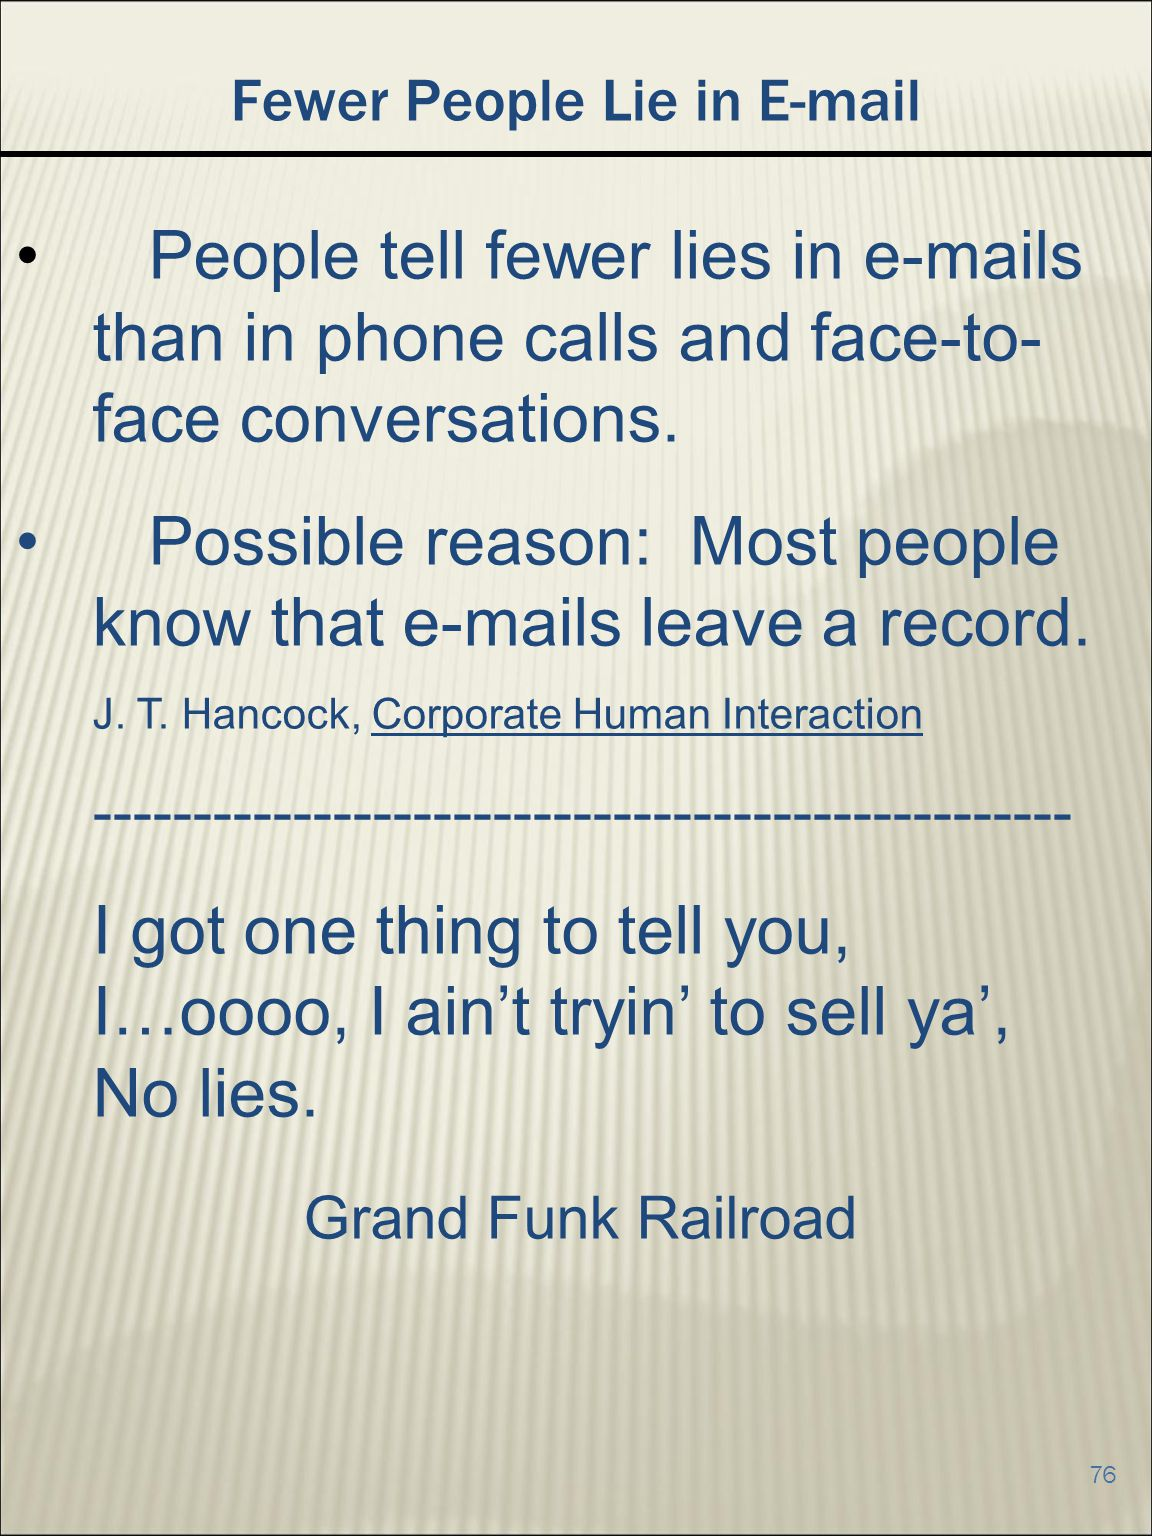 Fewer People Lie in E-mail